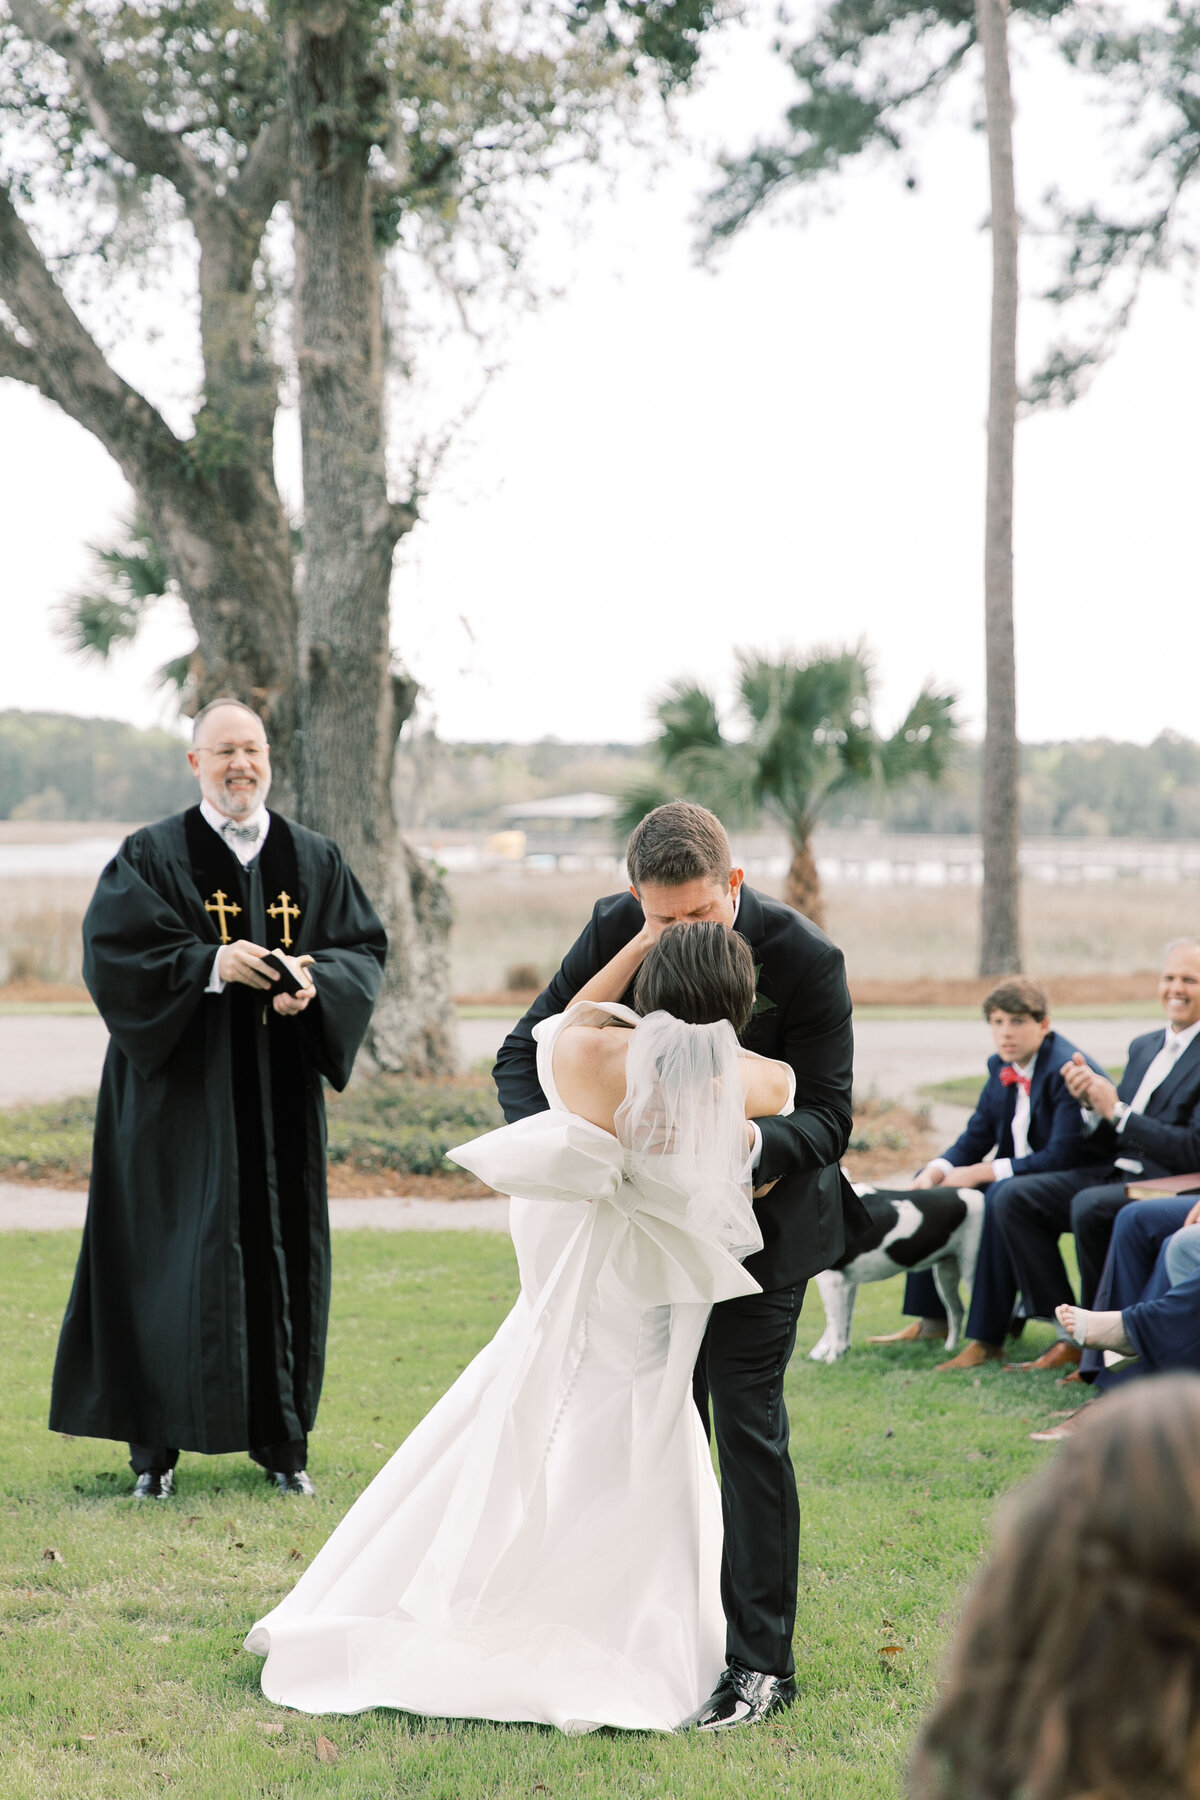 Powell_Oldfield_River_Club_Bluffton_South_Carolina_Beaufort_Savannah_Wedding_Jacksonville_Florida_Devon_Donnahoo_Photography_0642